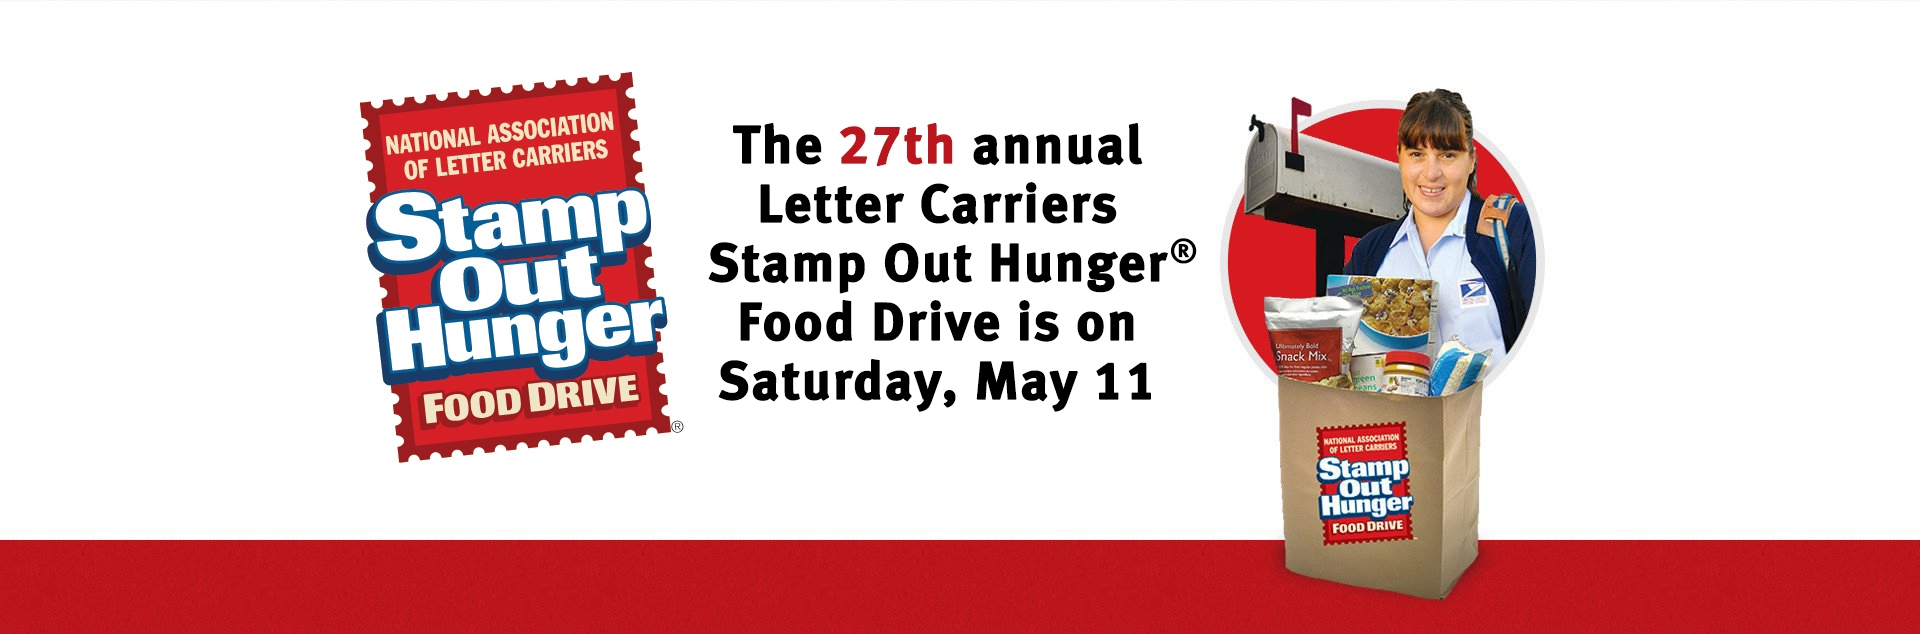 Letter Carriers Stamp Out Hunger Food Drive Home